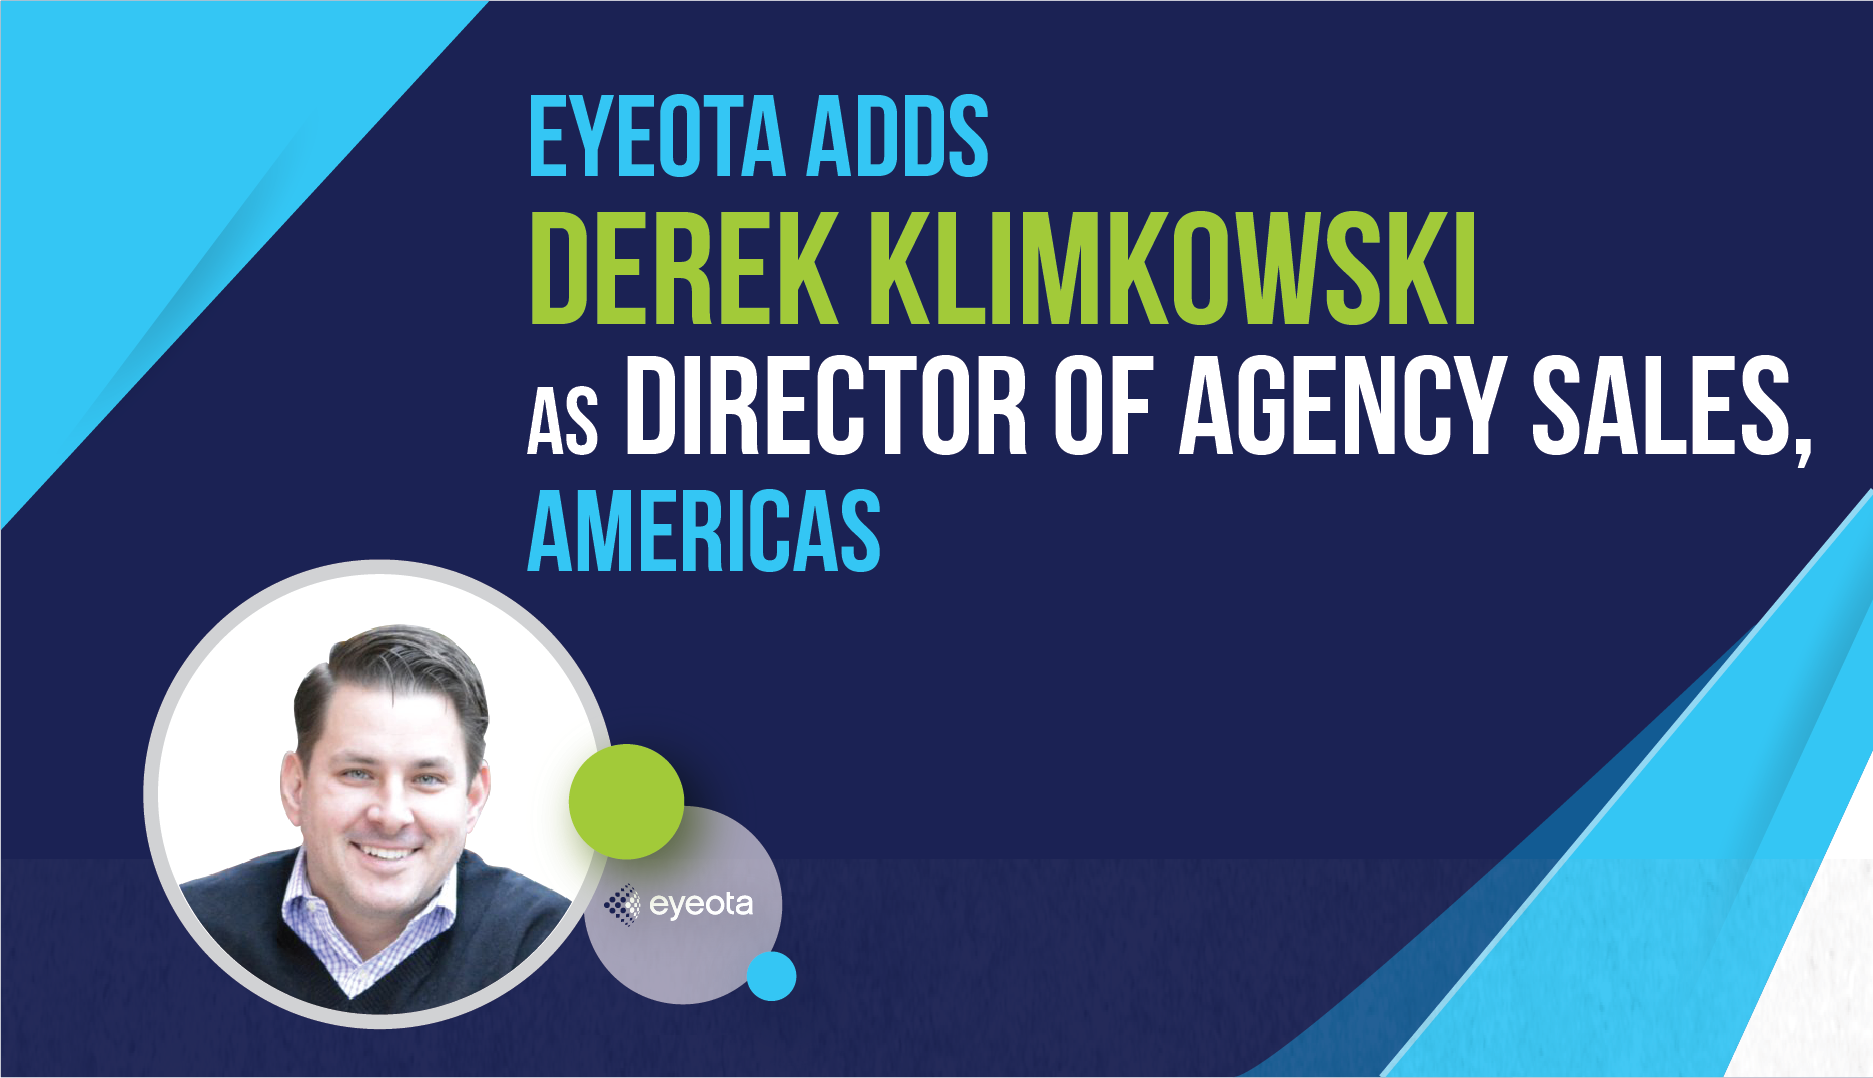 Eyeota Adds Derek Klimkowski as Director of Agency Sales, Americas